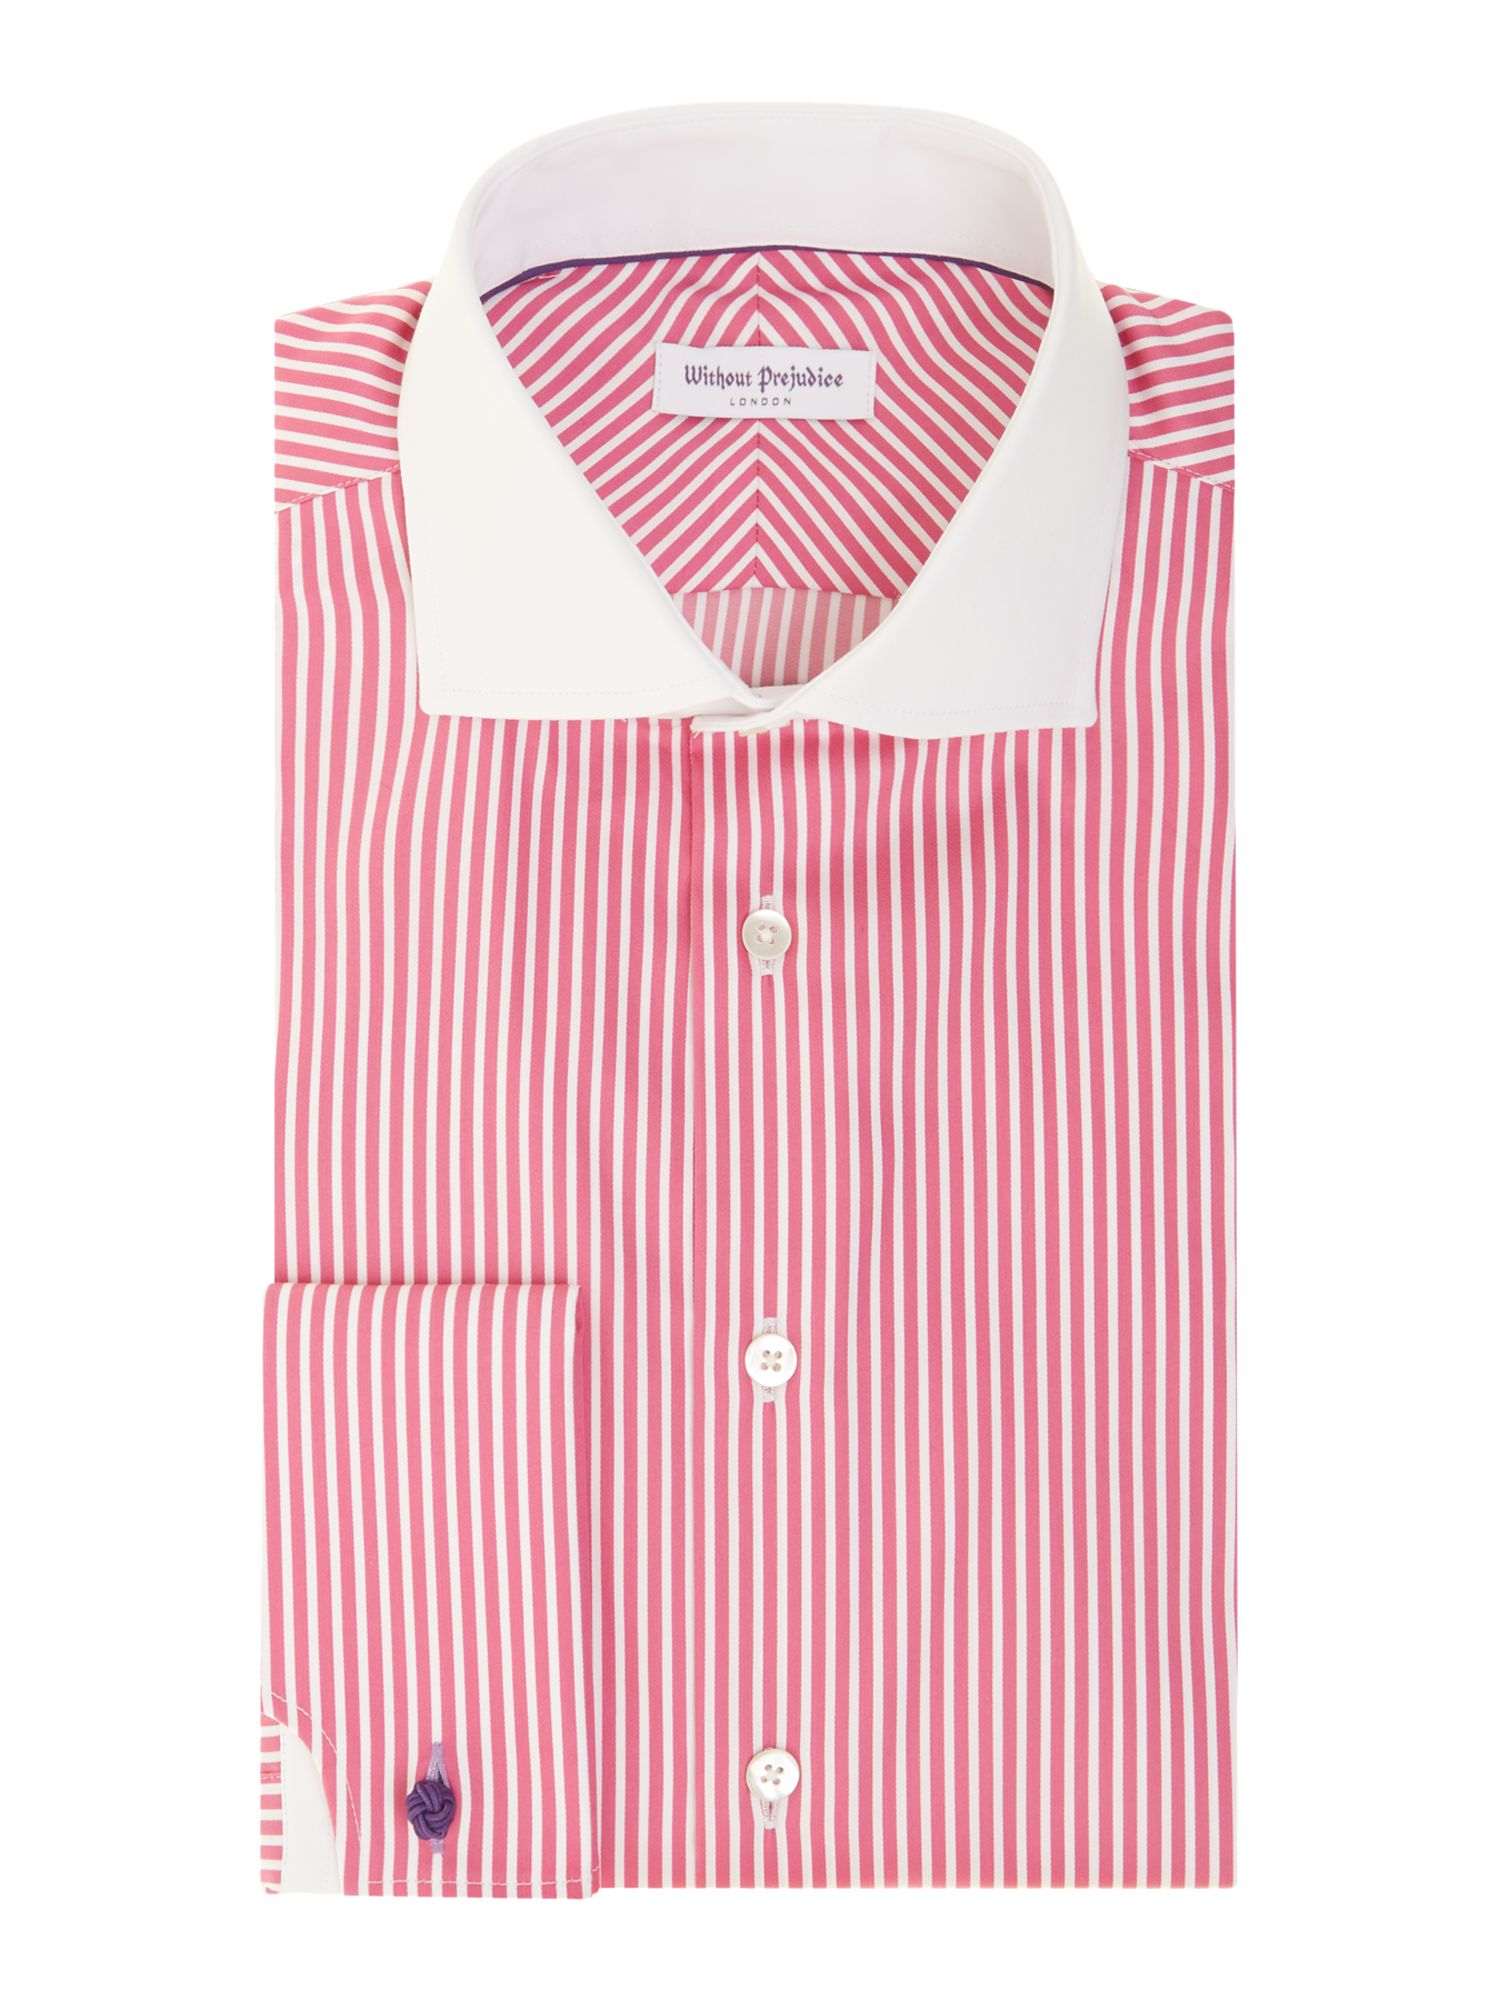 Kingswood regular fit double cuff stripe shirt